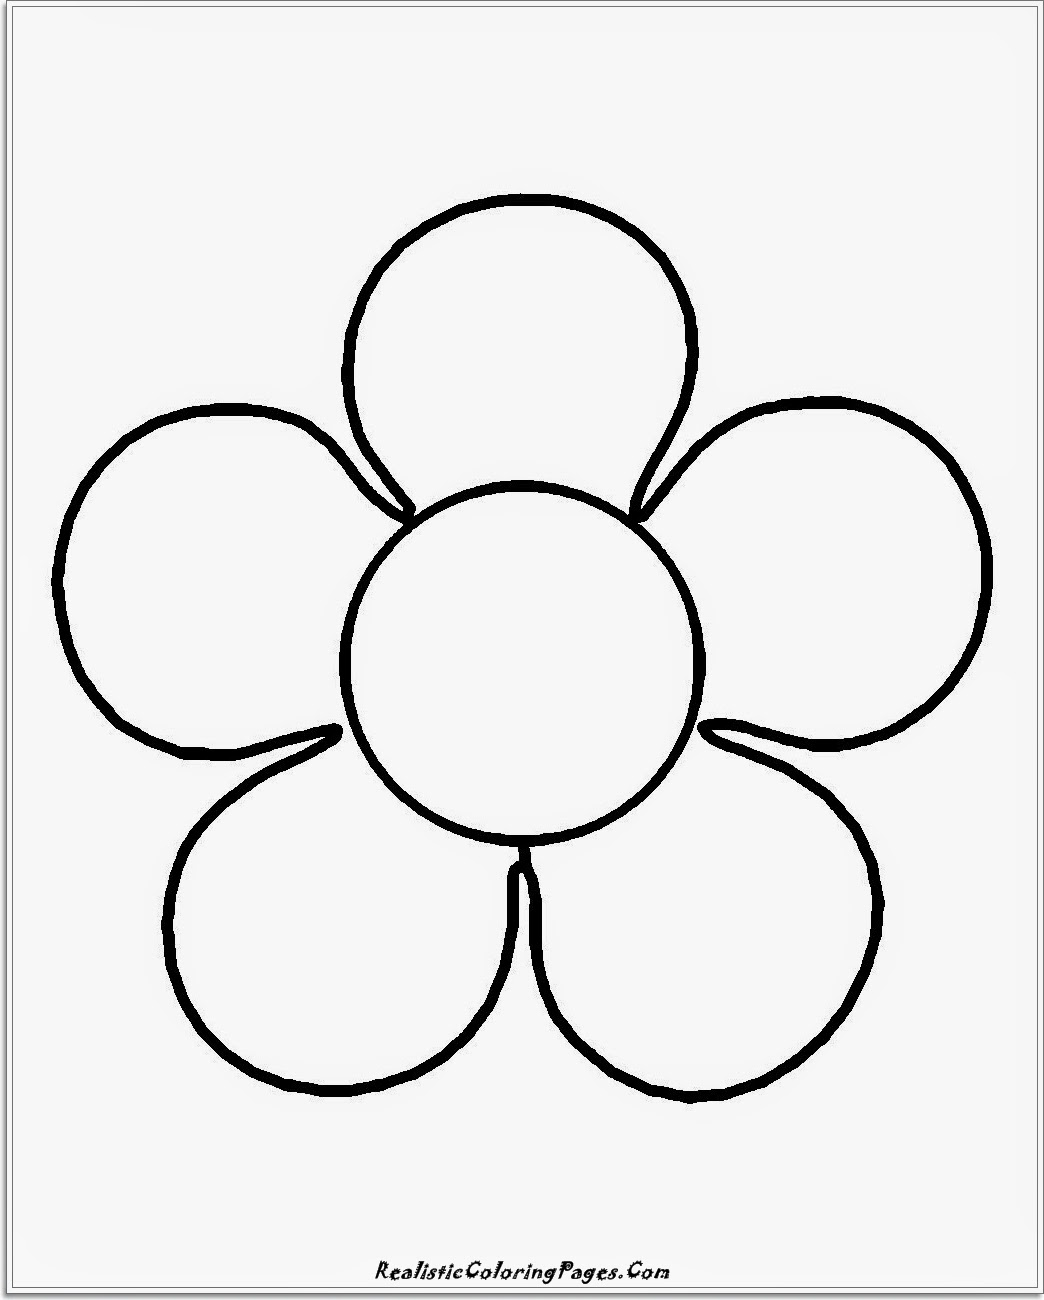 14 simple nature coloring pages realistic coloring pages for Coloring pages for kids flowers